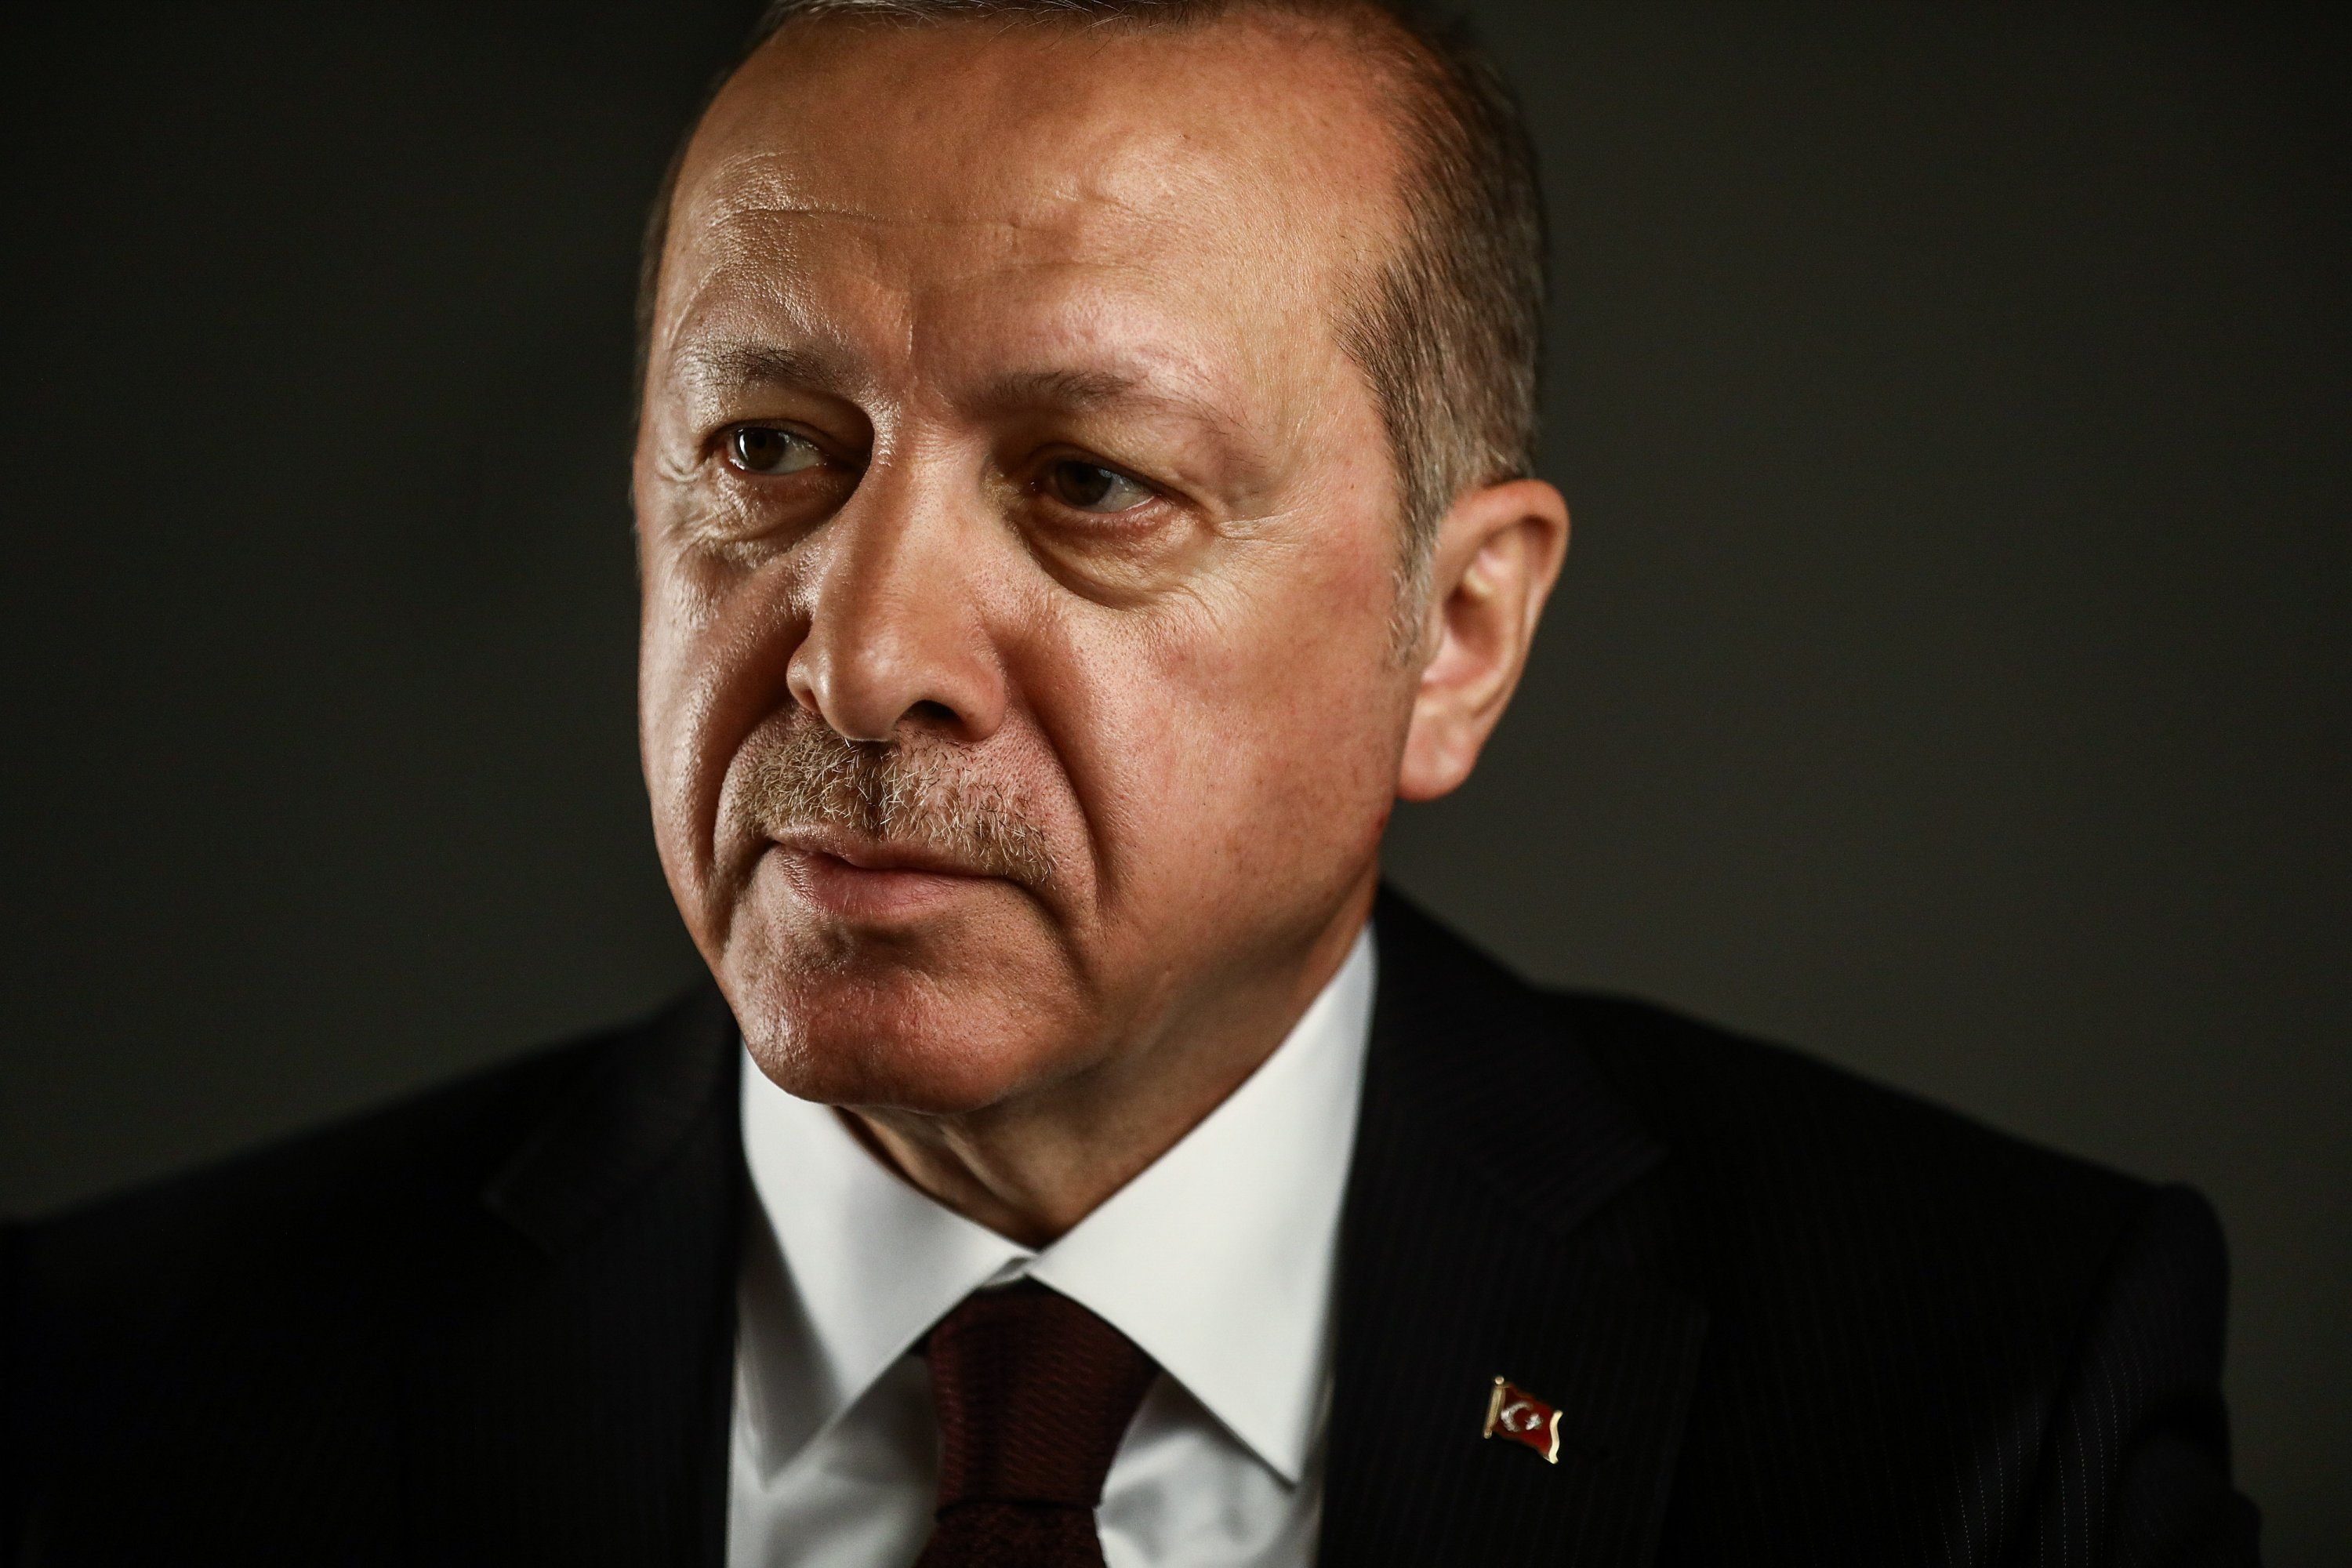 President Recep Tayyip Erdoğan poses for a photograph following a Bloomberg Television interview in London, U.K., May 14, 2018. (Getty Images Photo)